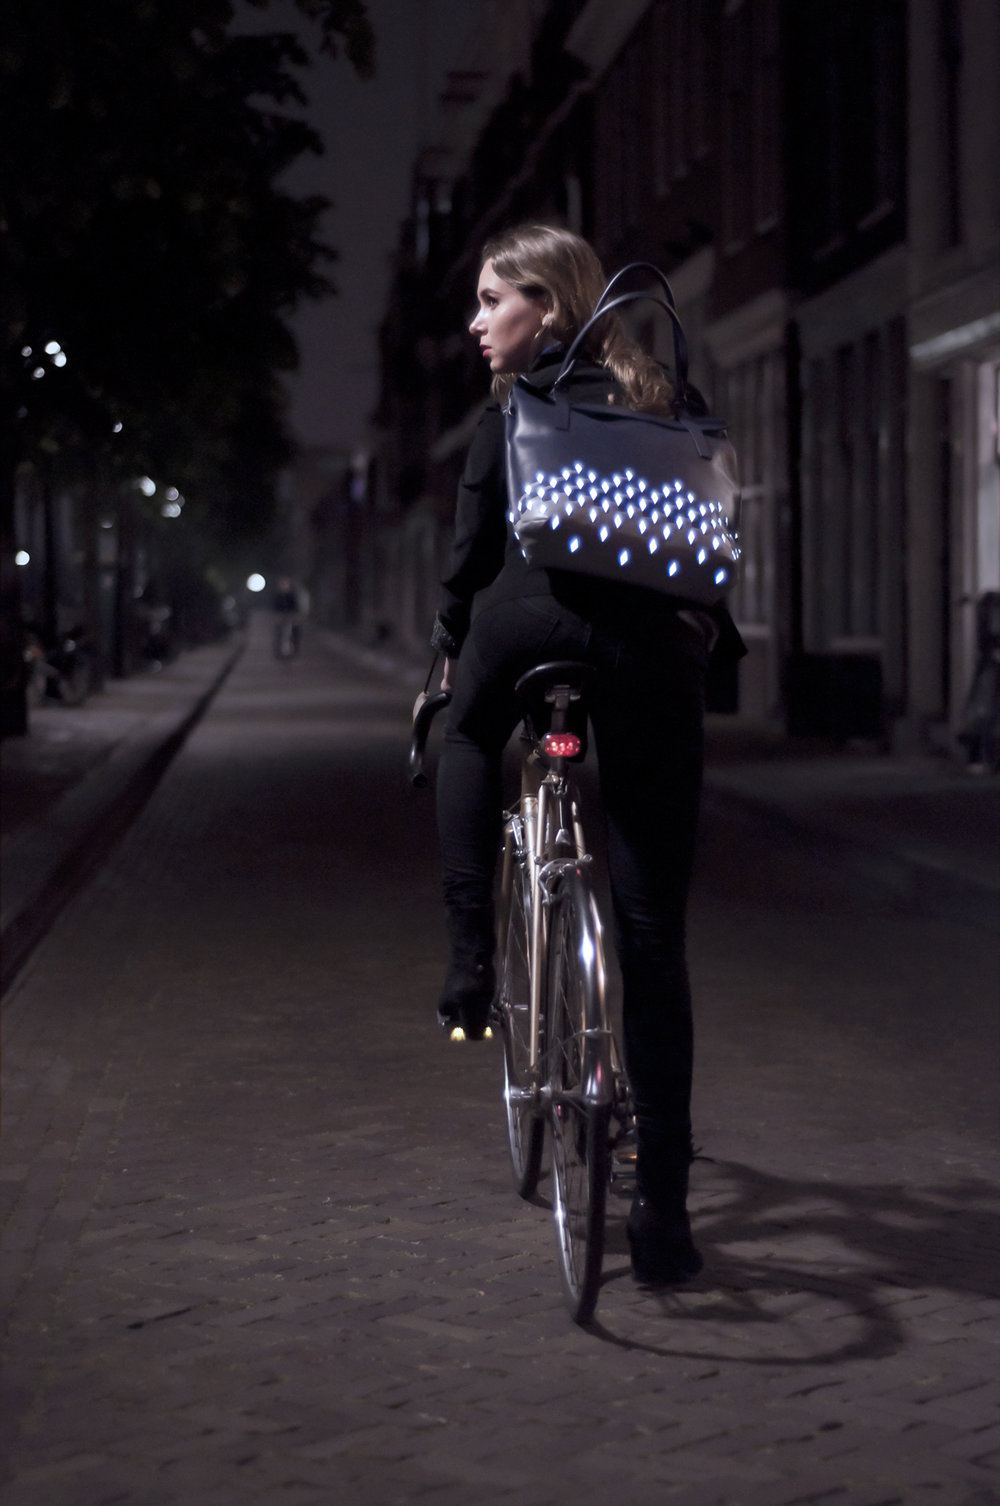 The cyclist_collection1_penelope00.jpg